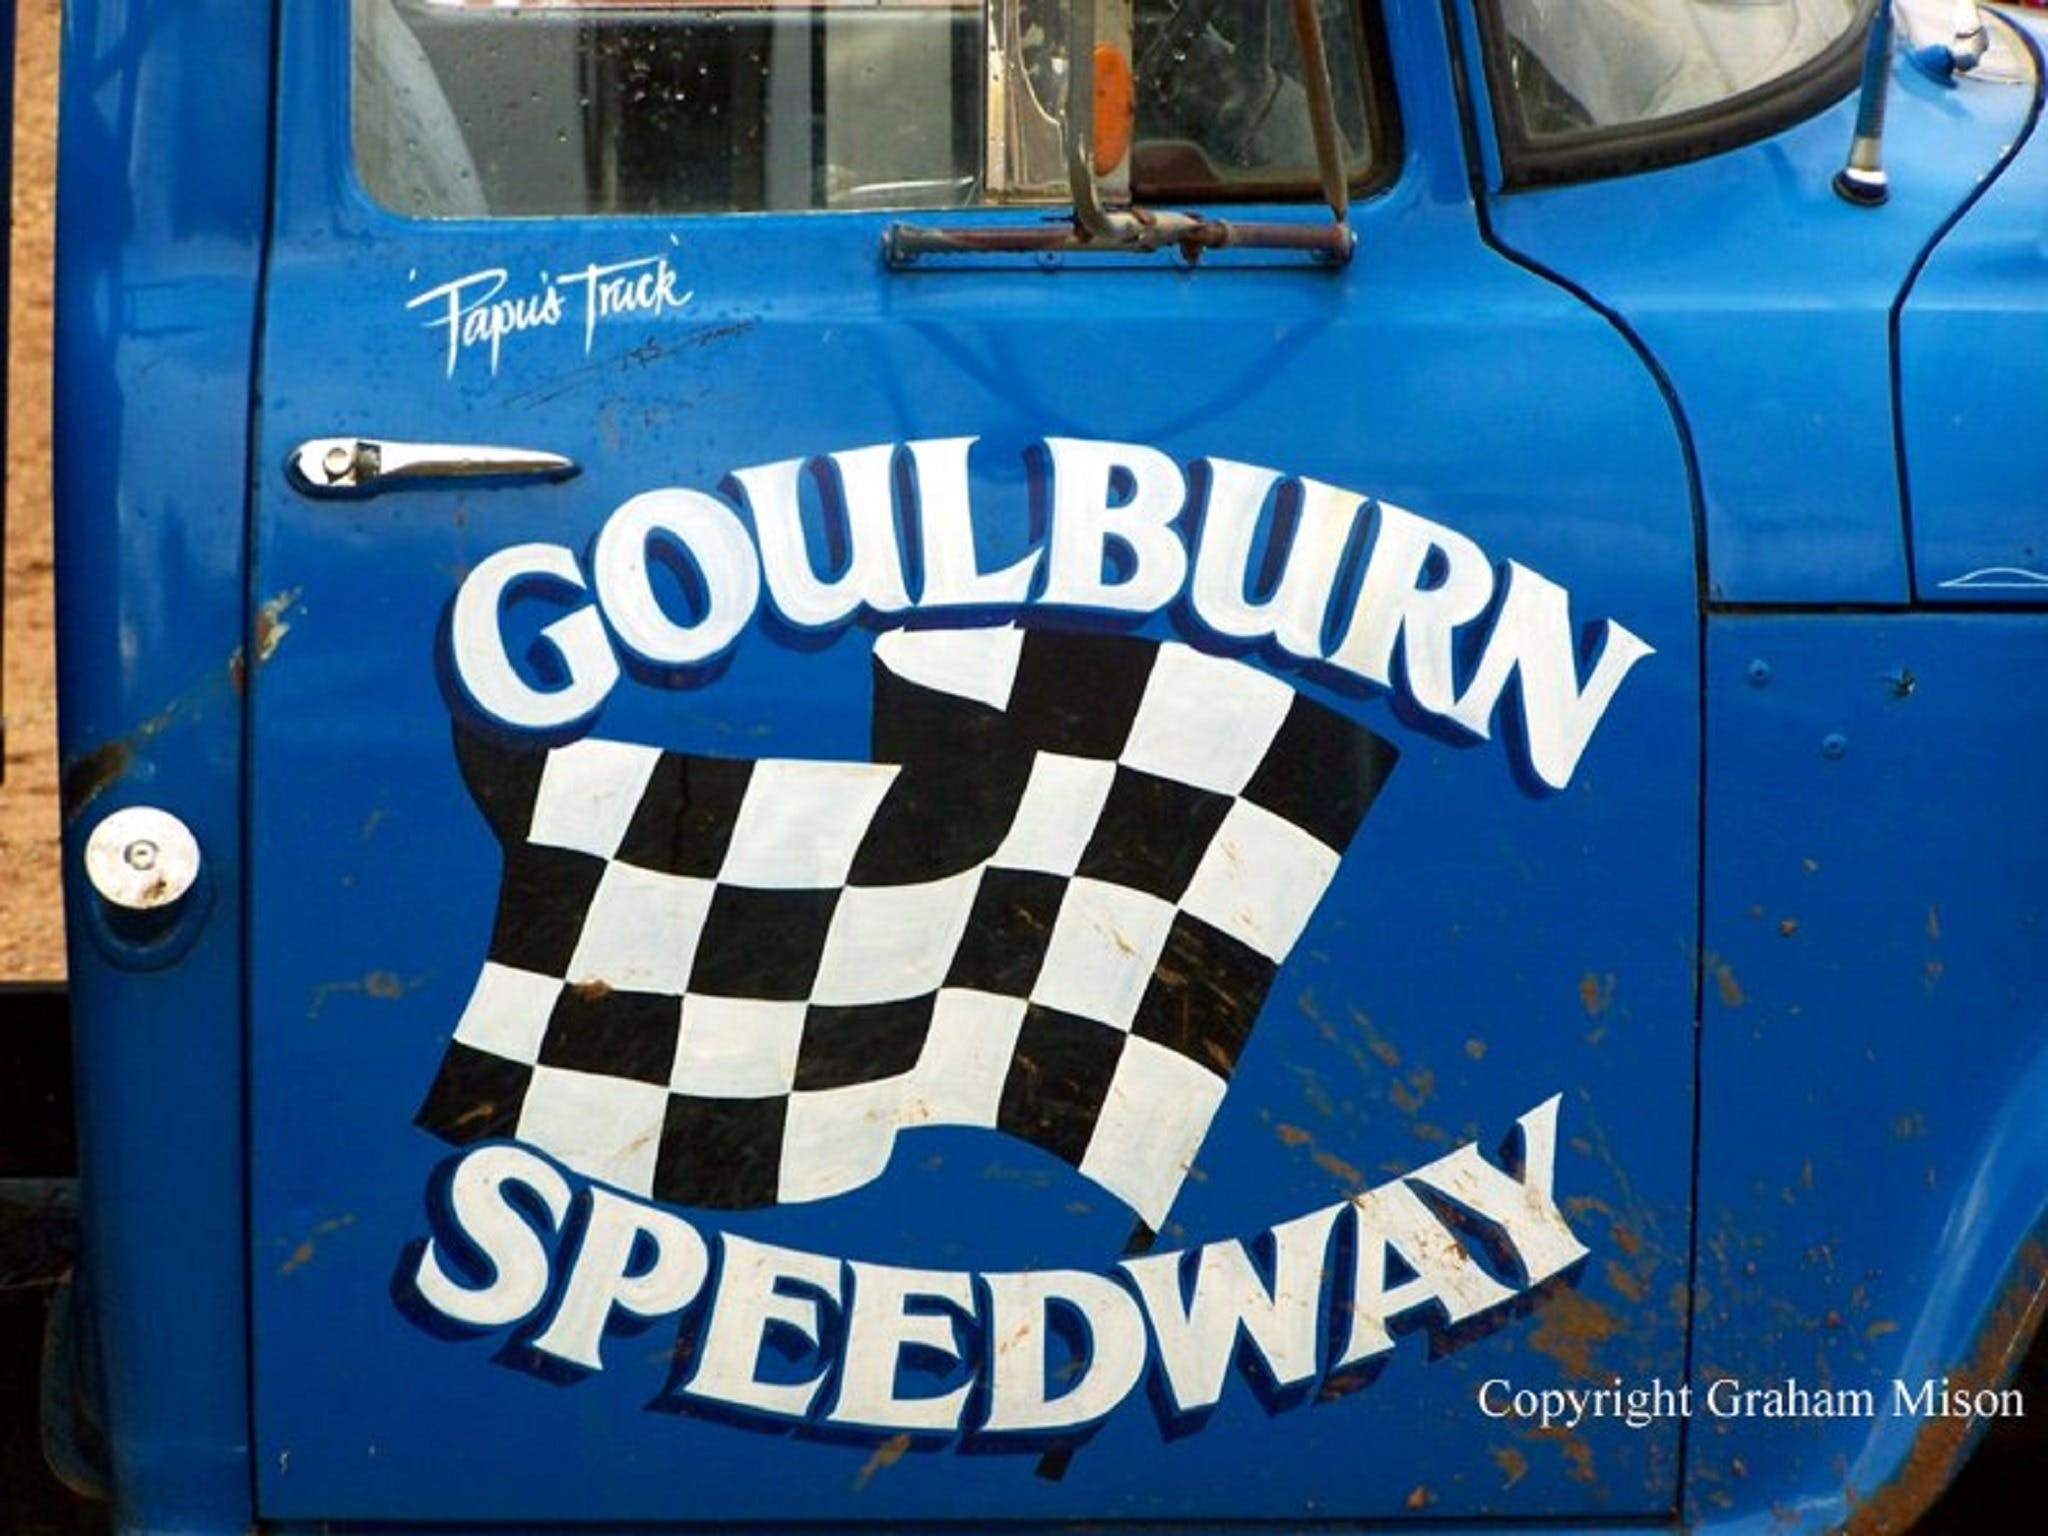 50 years of racing at Goulburn Speedway - Accommodation Tasmania